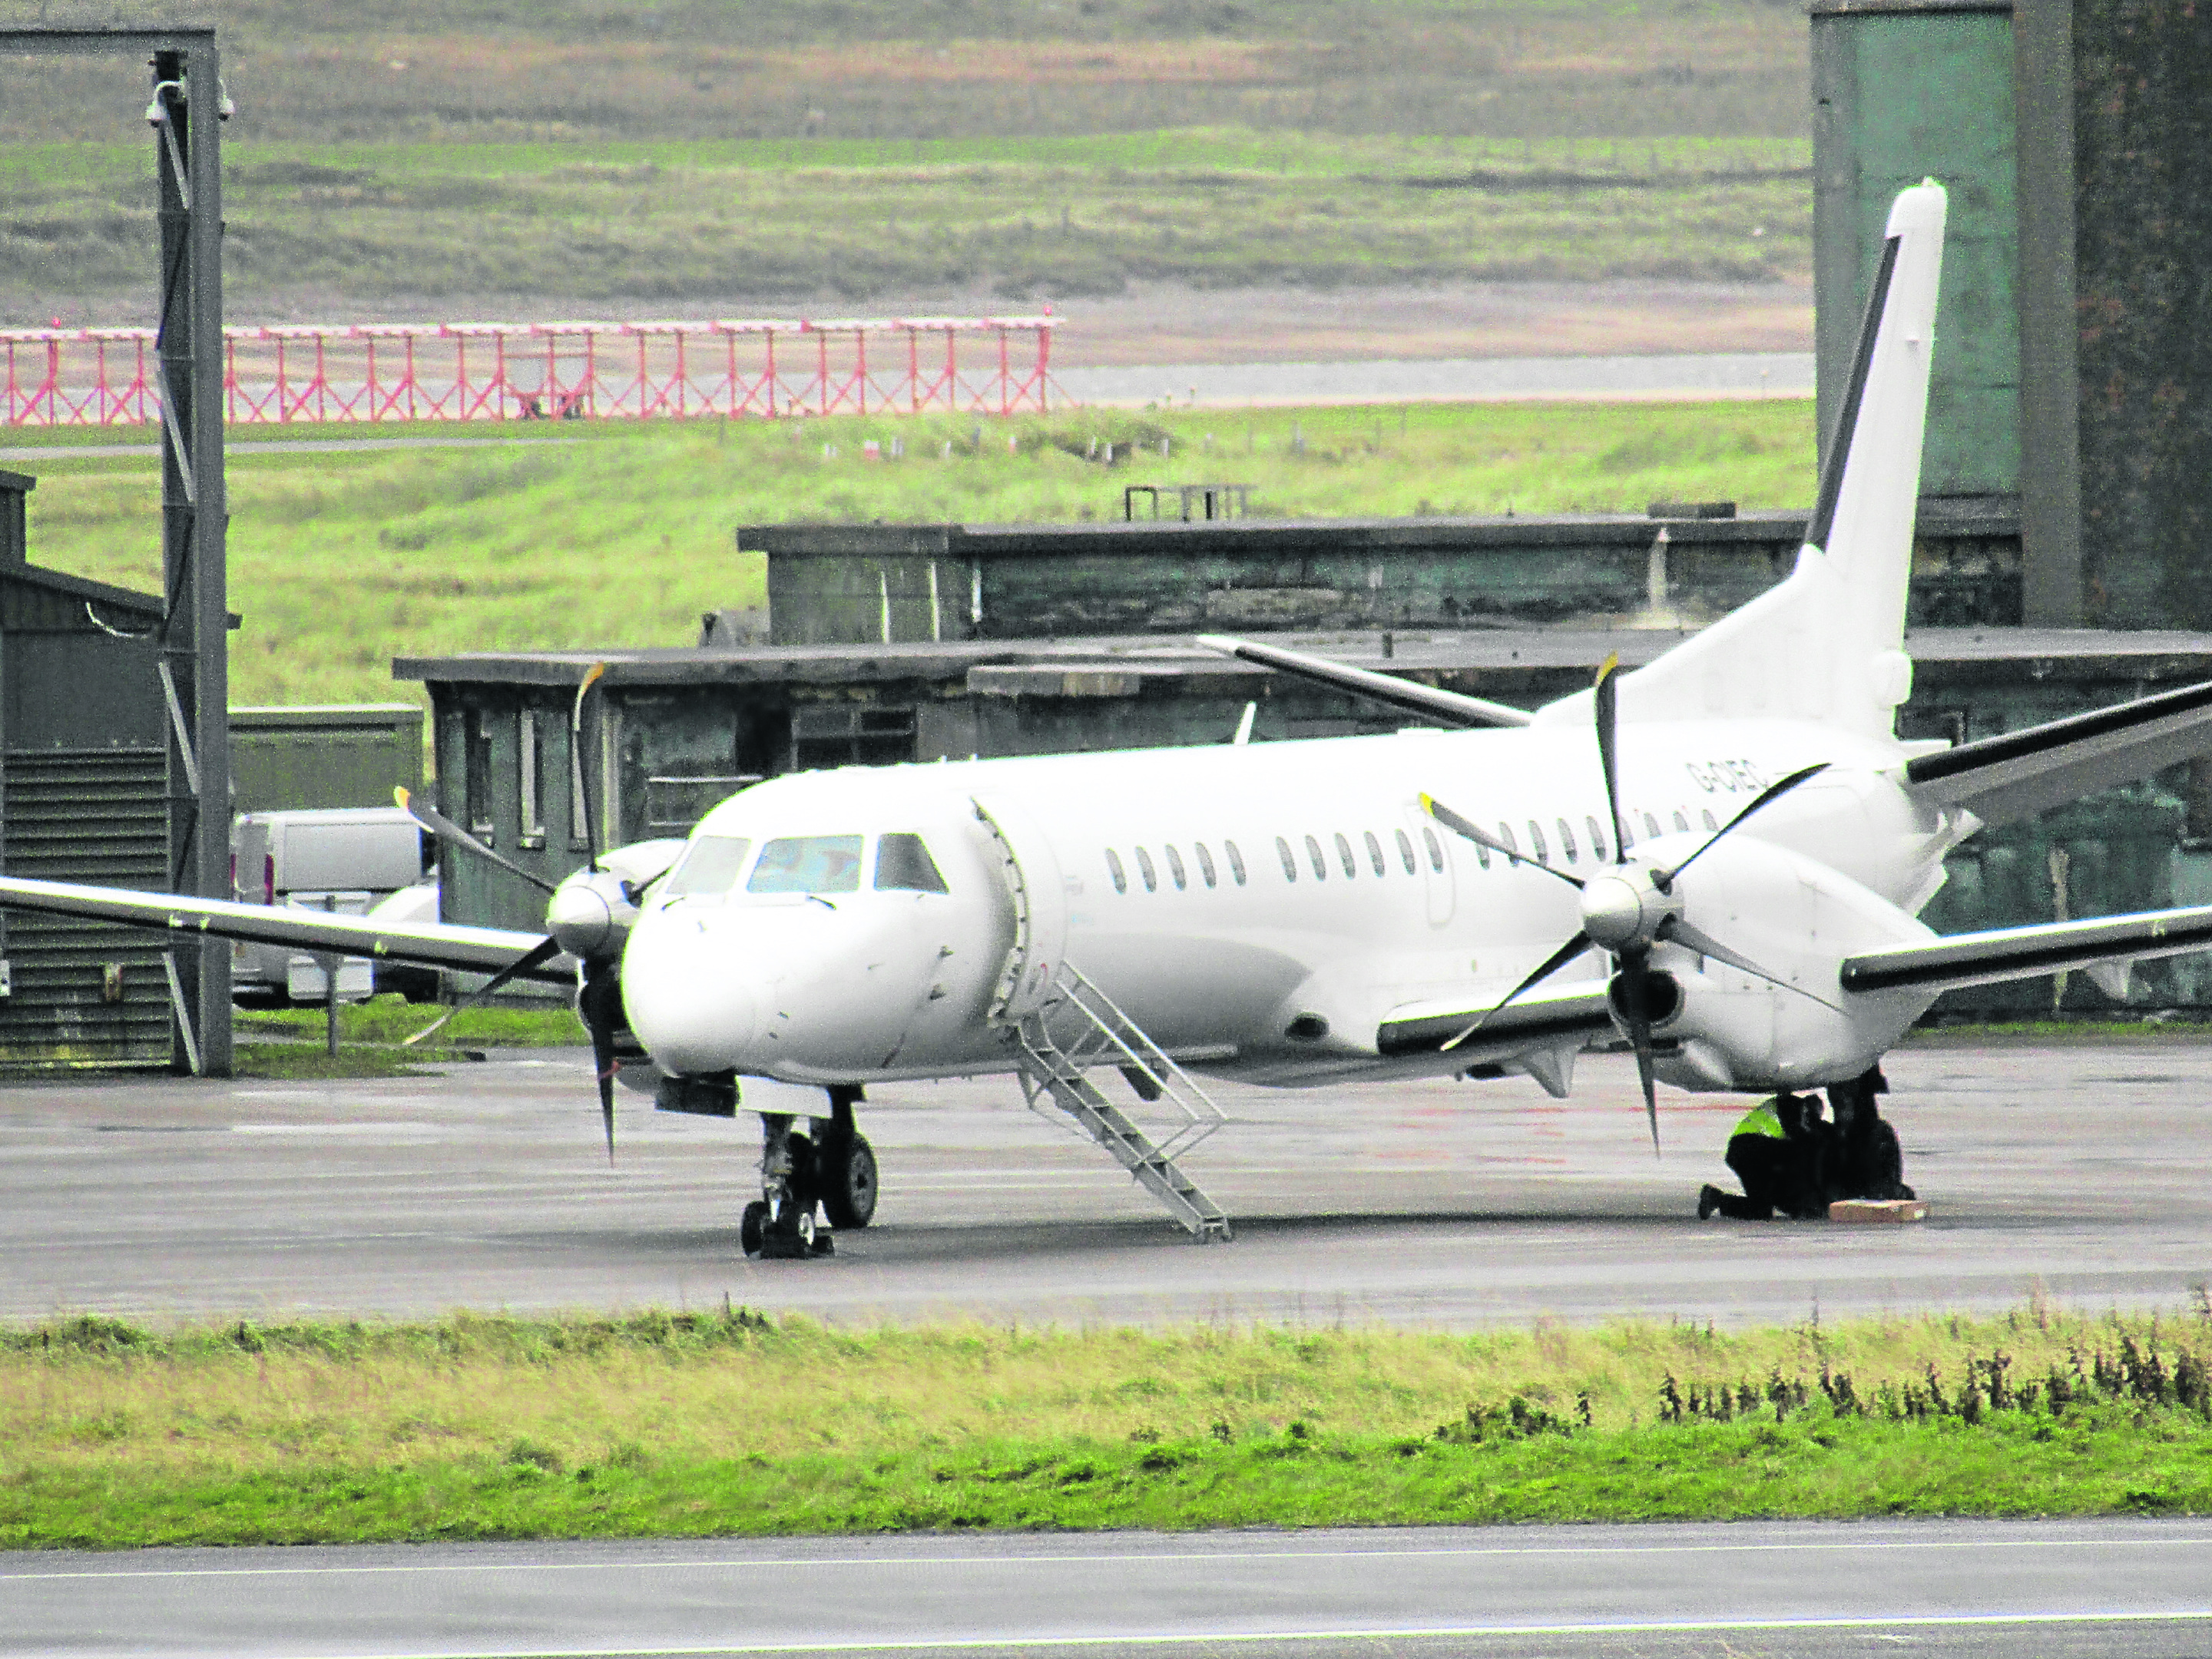 Pis show the wheels of the Saab 2000 being inspected at Stornoway Airport